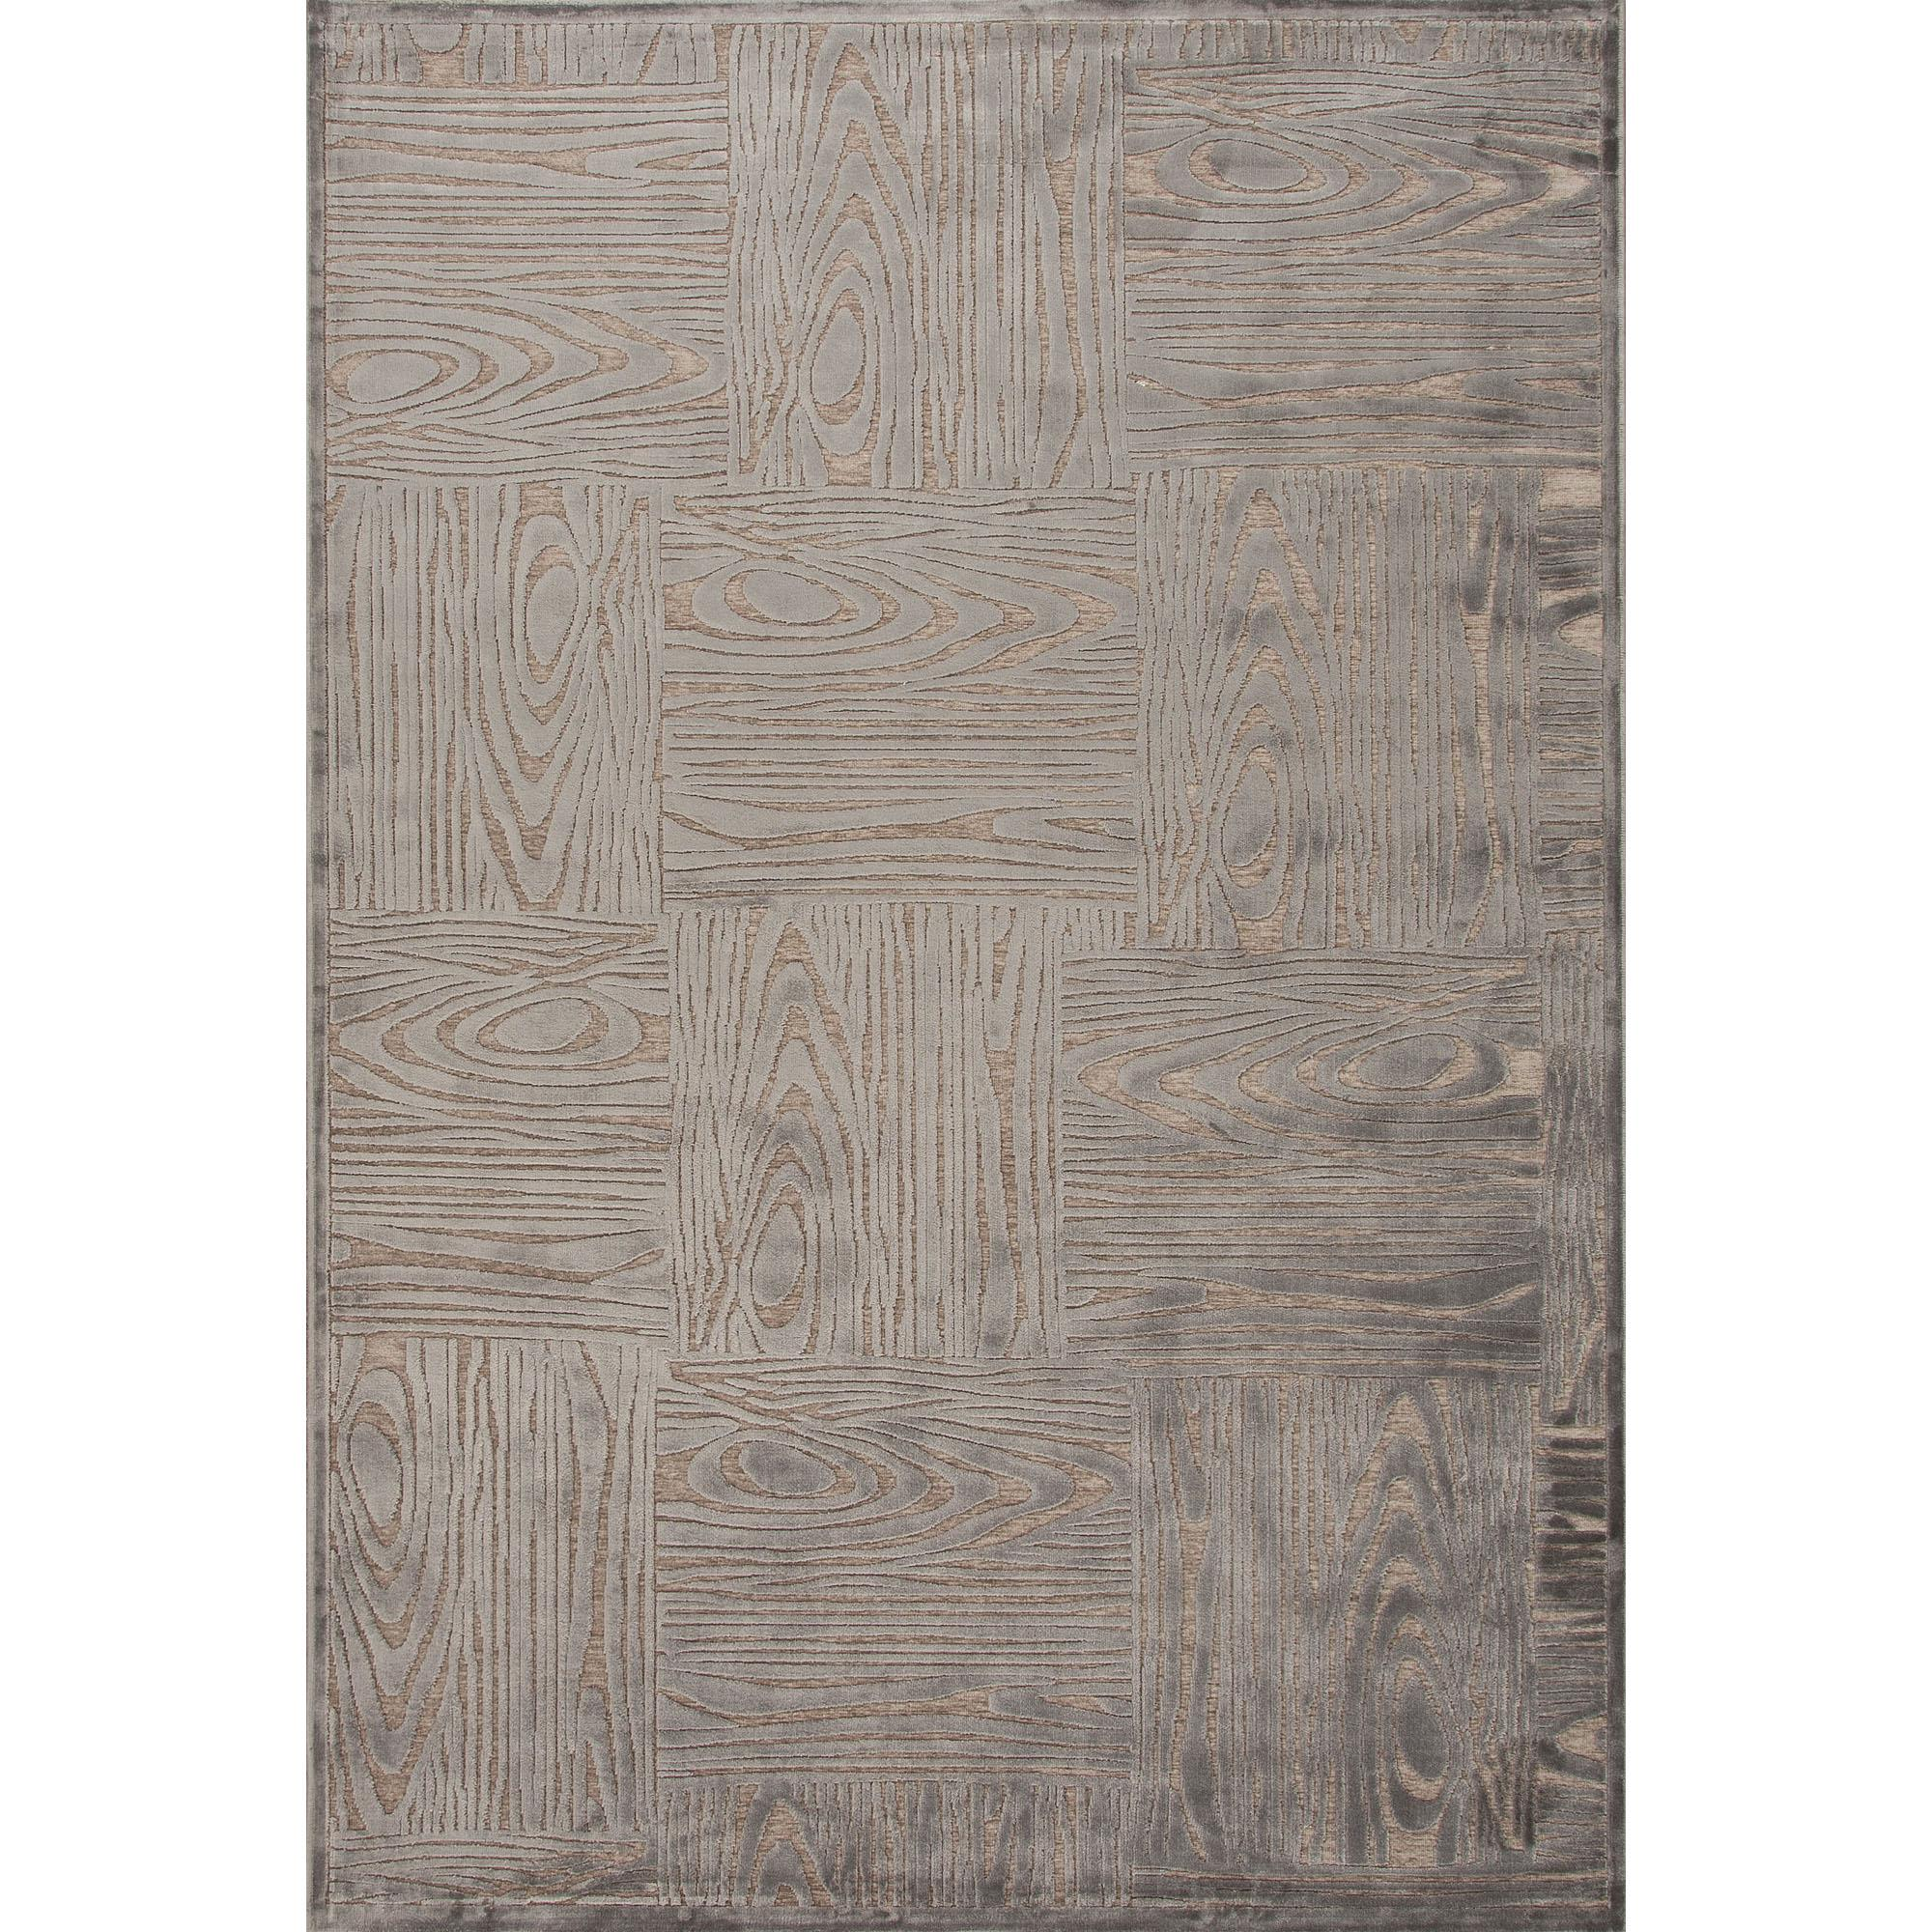 JAIPUR Rugs Fables 9 x 12 Rug - Item Number: RUG113540